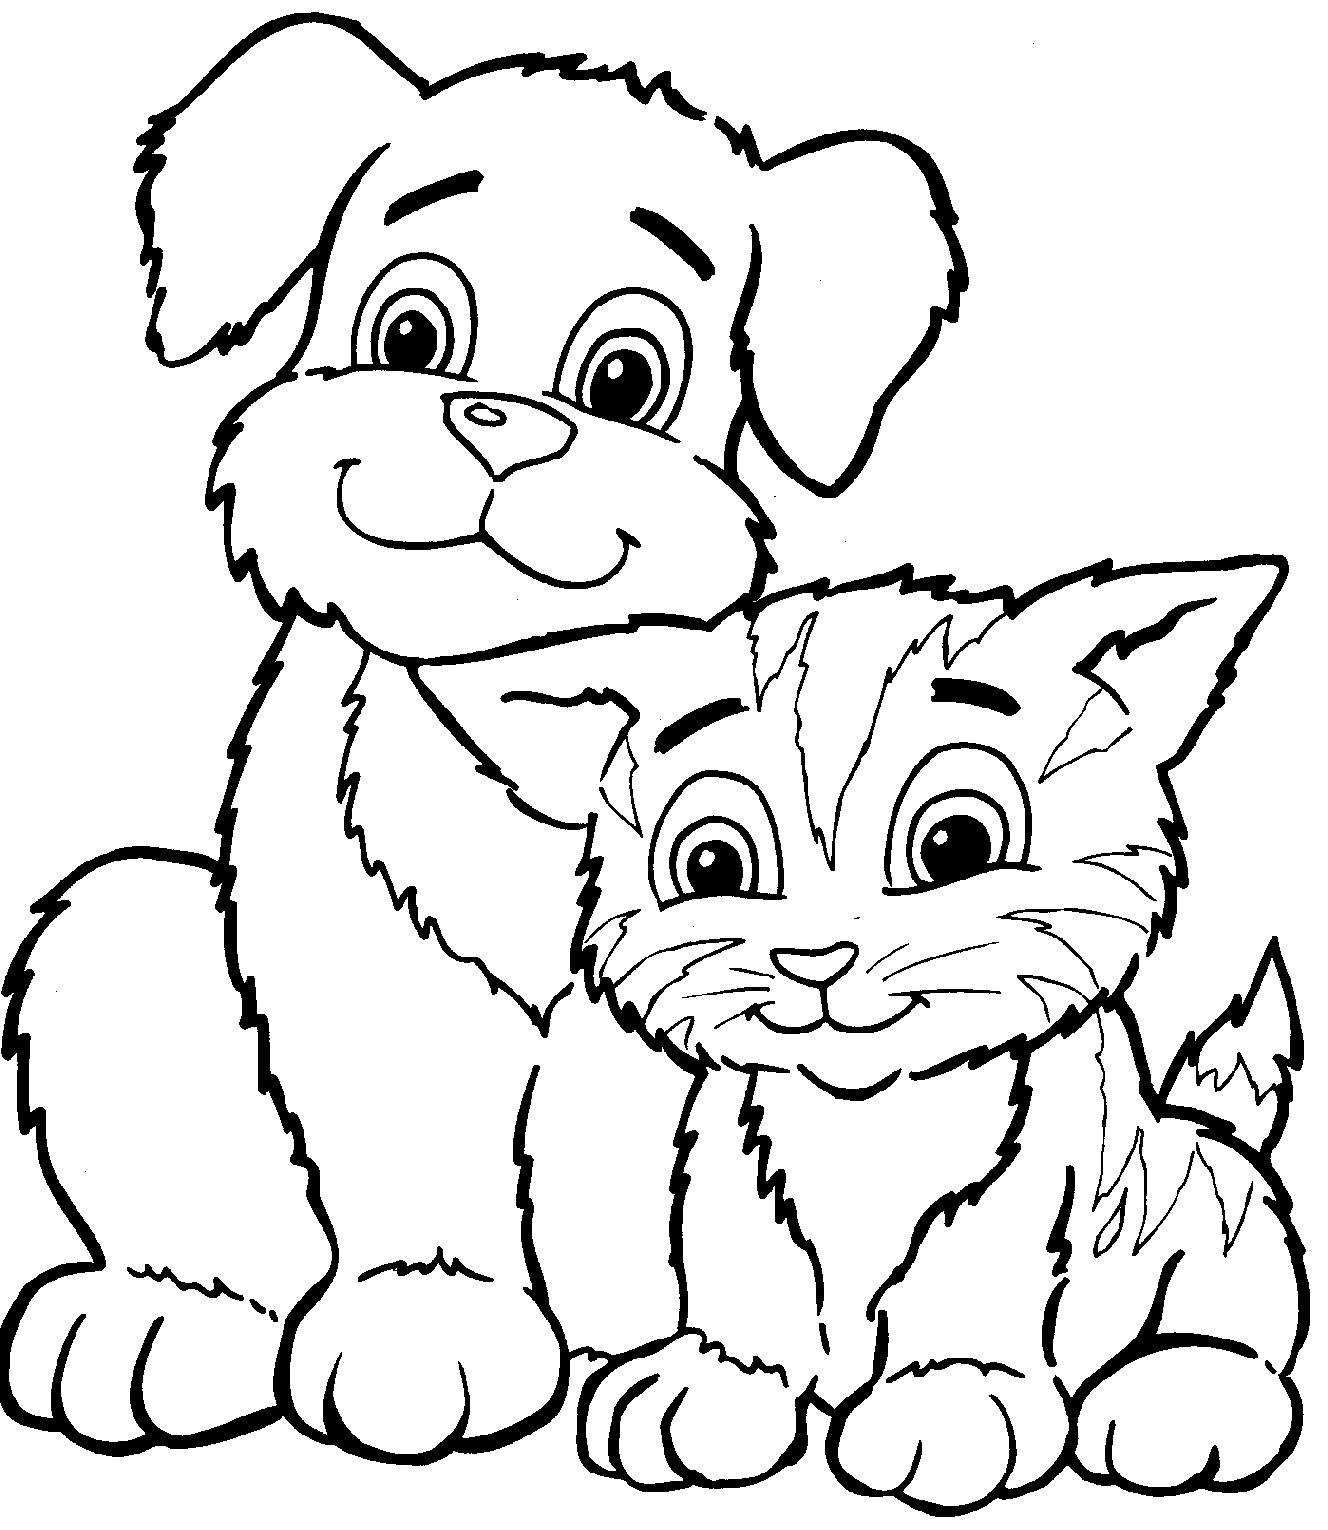 1328x1530 Coloring Pages Of Cats Printable Fresh Free Printable Cat Coloring